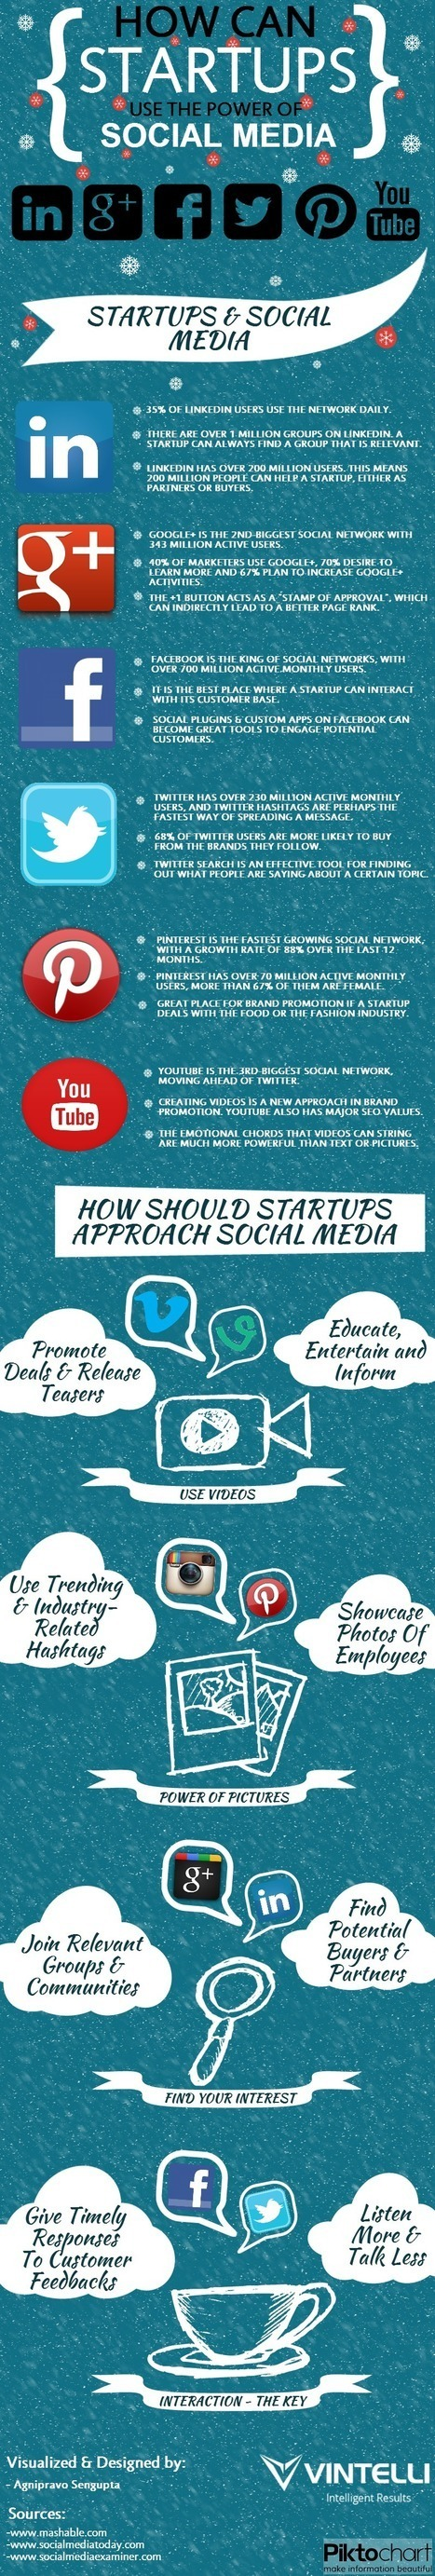 How Can Startups Use The Power Of Social Media (Infographic) | Marketing_me | Scoop.it